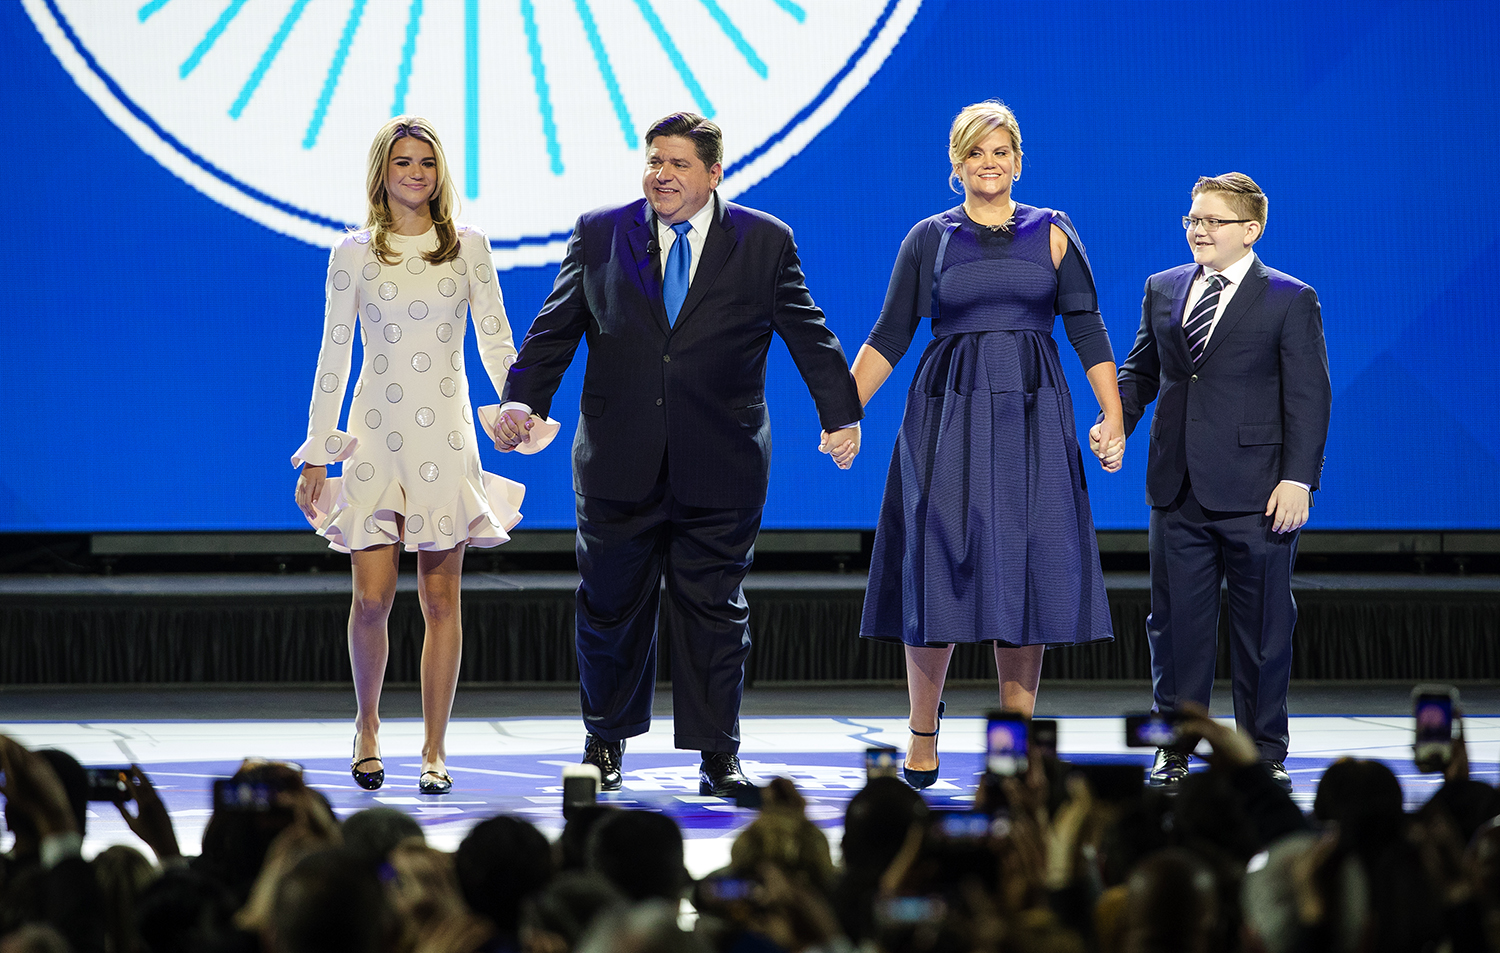 Teddi, left, Governor-elect J.B., M.K. and Donny Pritzker take the stage during the Illinois Inaugural Ceremony at the Bank of Springfield Center Monday, Jan. 14, 2019. [Ted Schurter/The State Journal-Register][Ted Schurter/The State Journal-Register]